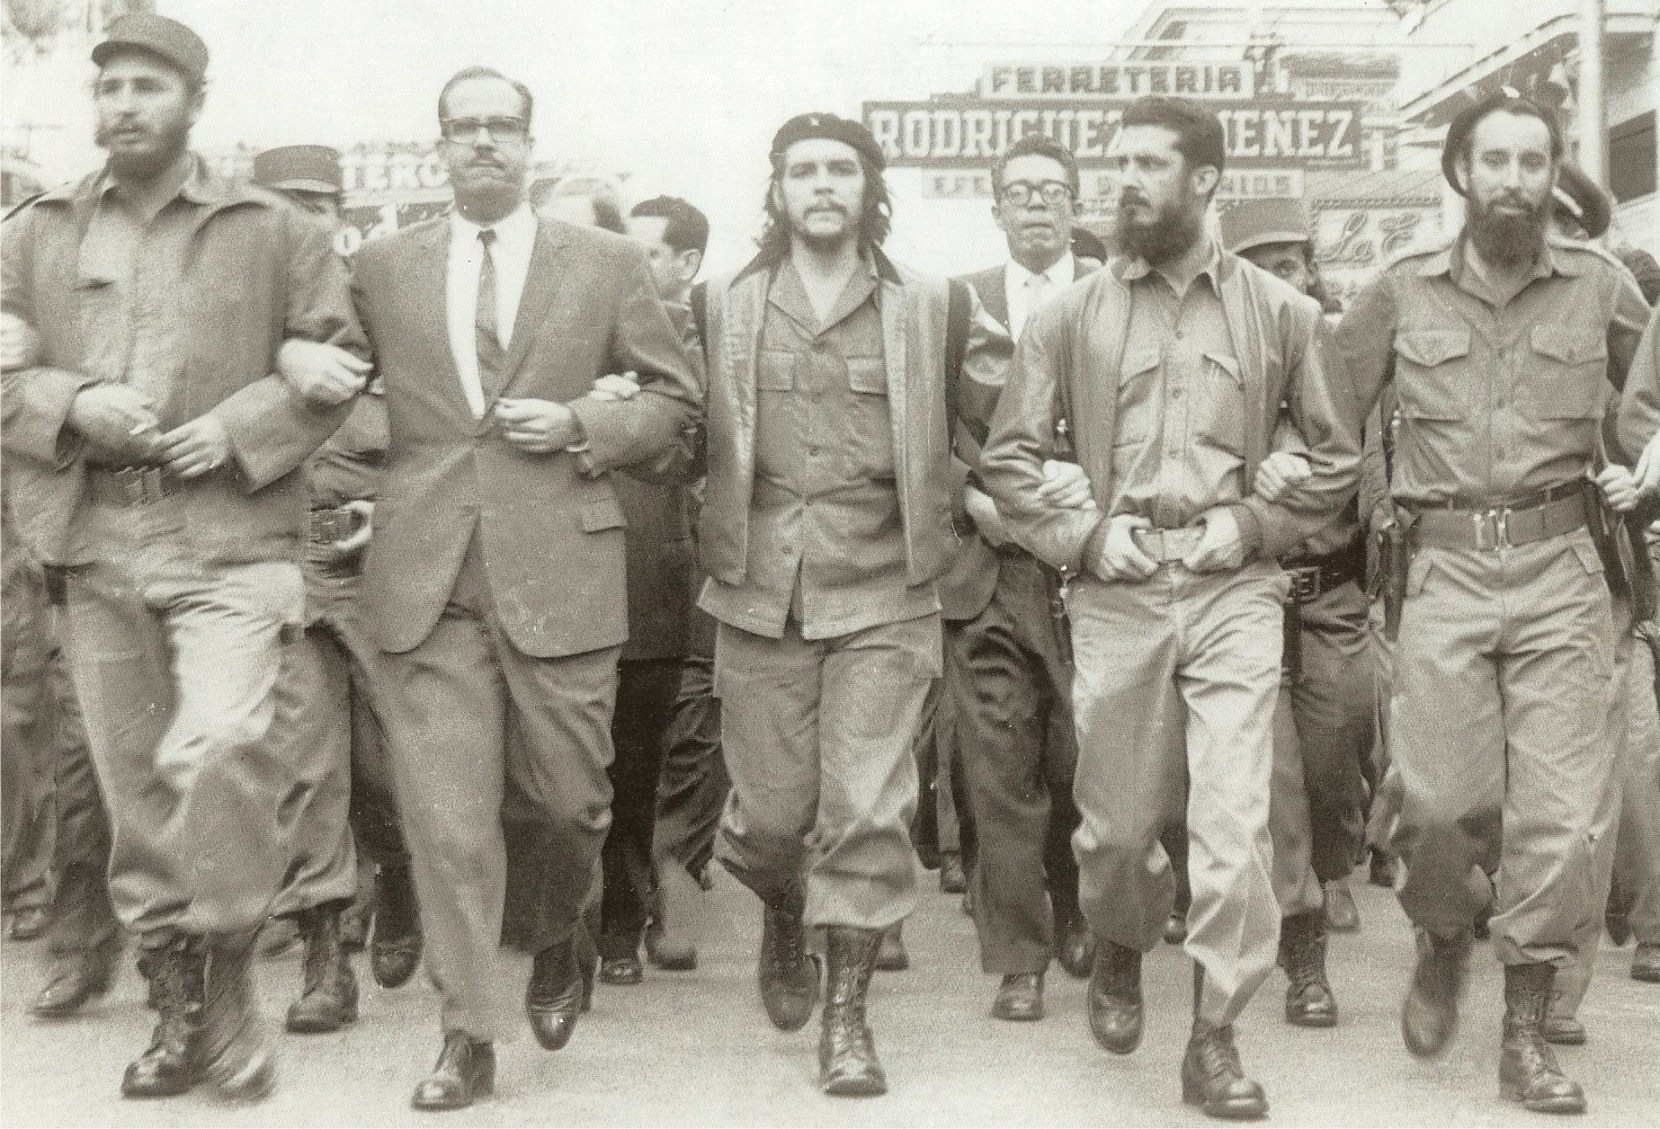 Castro (far left), Che Guevara (center), and other leading revolutionaries, marching through the streets in protest at the La Coubre explosion, March 5, 1960